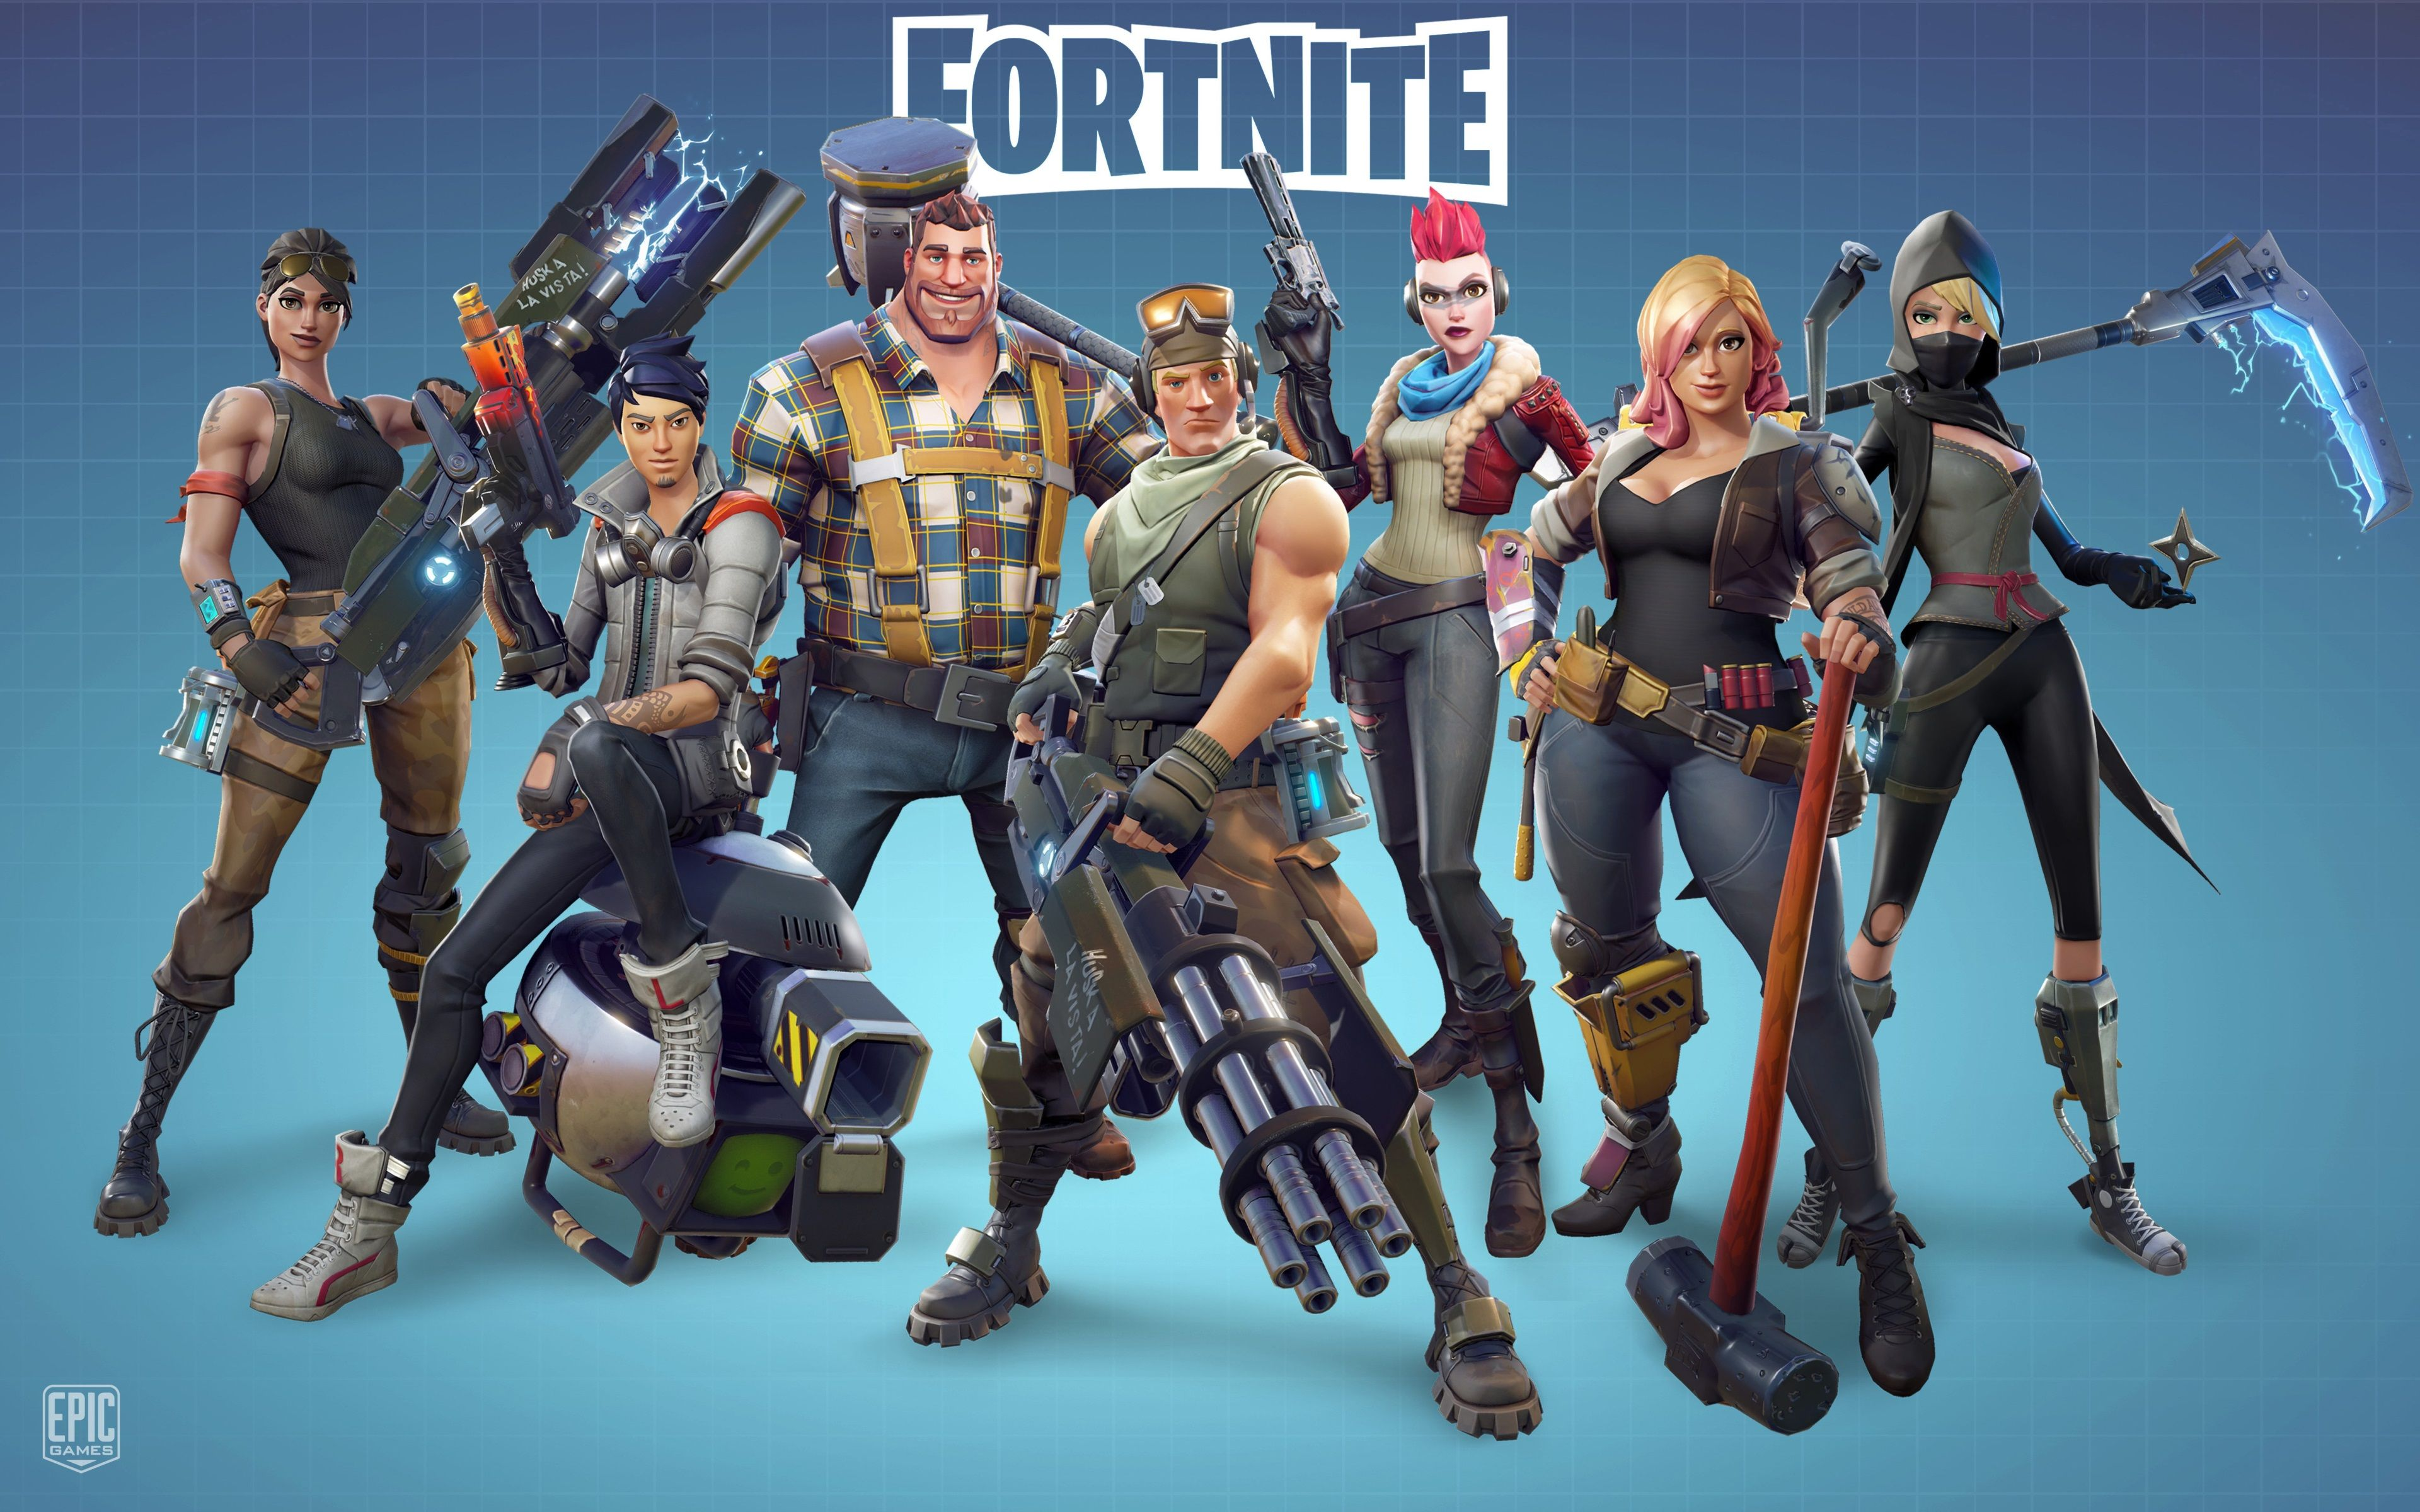 Fortnite clipart wallpaper.